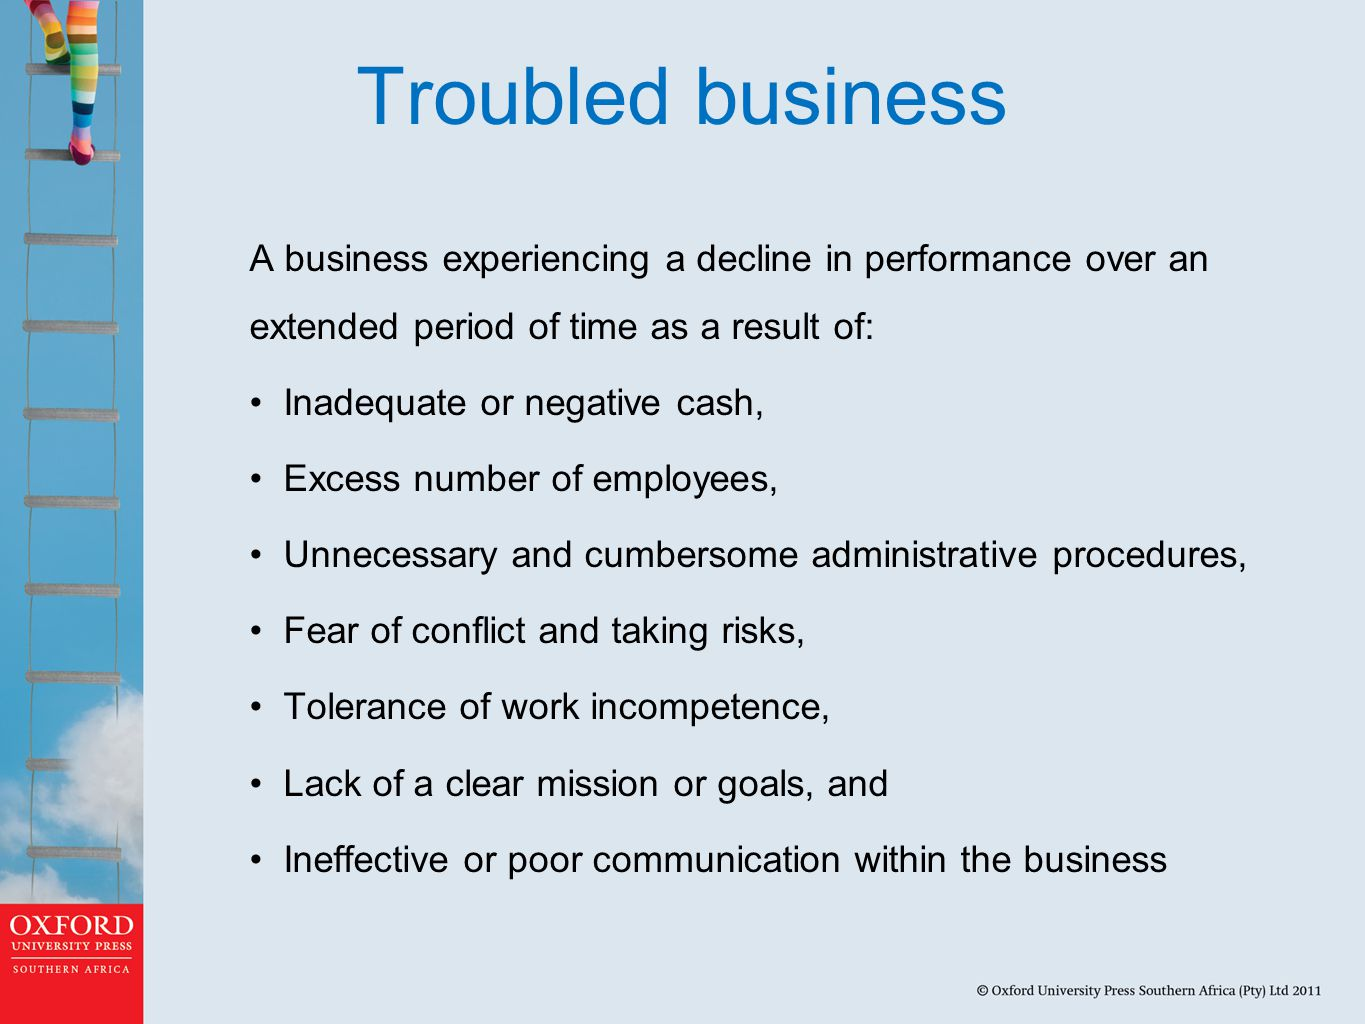 Troubled business A business experiencing a decline in performance over an extended period of time as a result of: Inadequate or negative cash, Excess number of employees, Unnecessary and cumbersome administrative procedures, Fear of conflict and taking risks, Tolerance of work incompetence, Lack of a clear mission or goals, and Ineffective or poor communication within the business